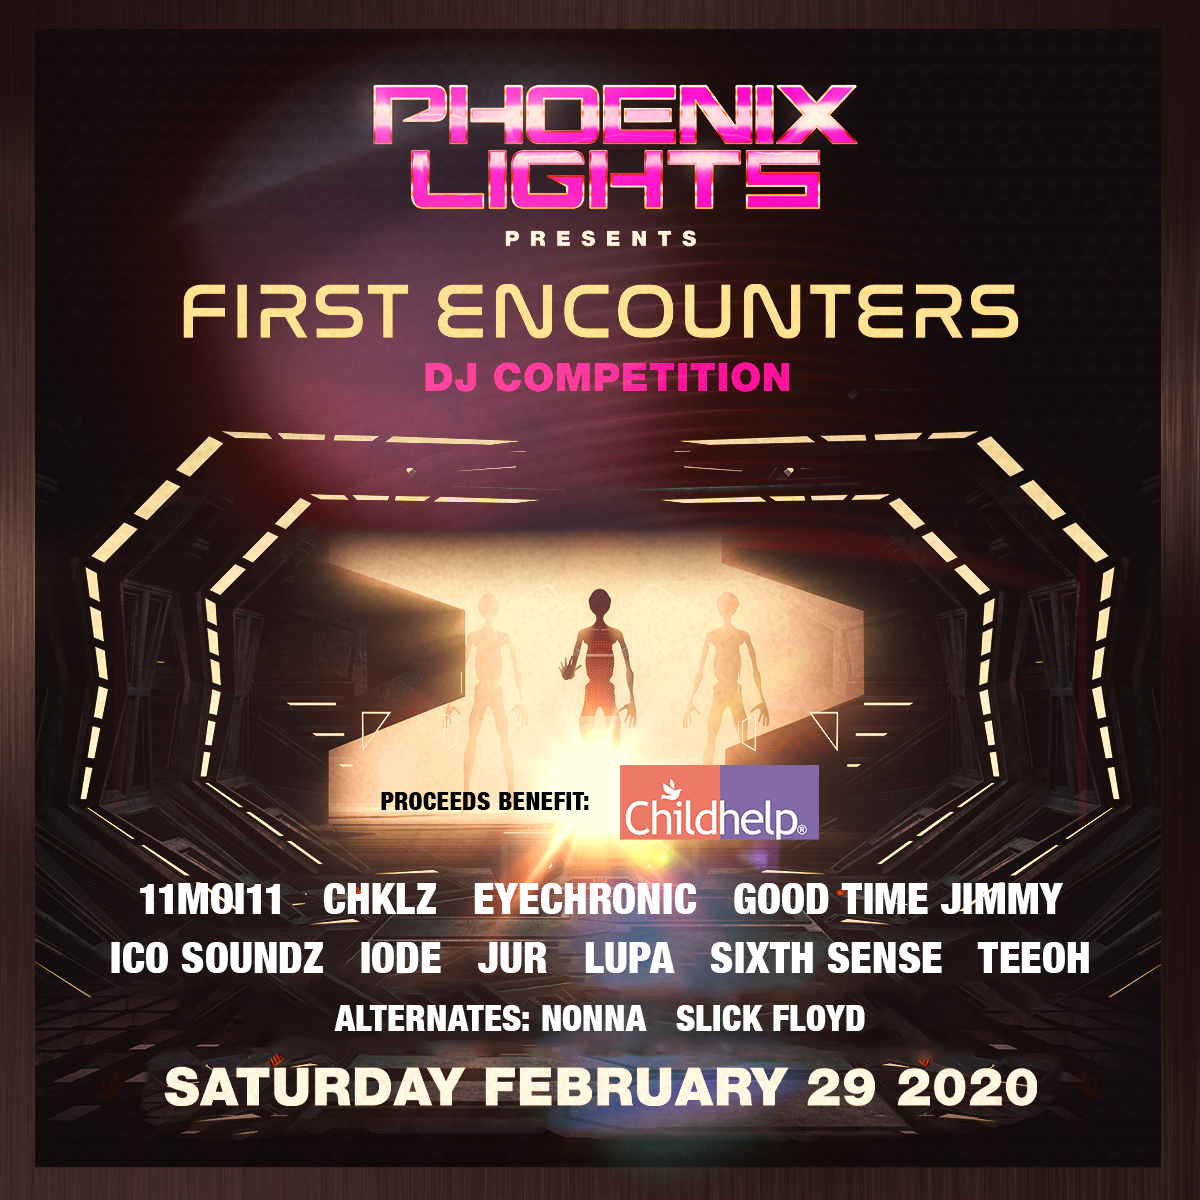 Flyer for 4th Annual Phoenix Lights First Encounters DJ Competition